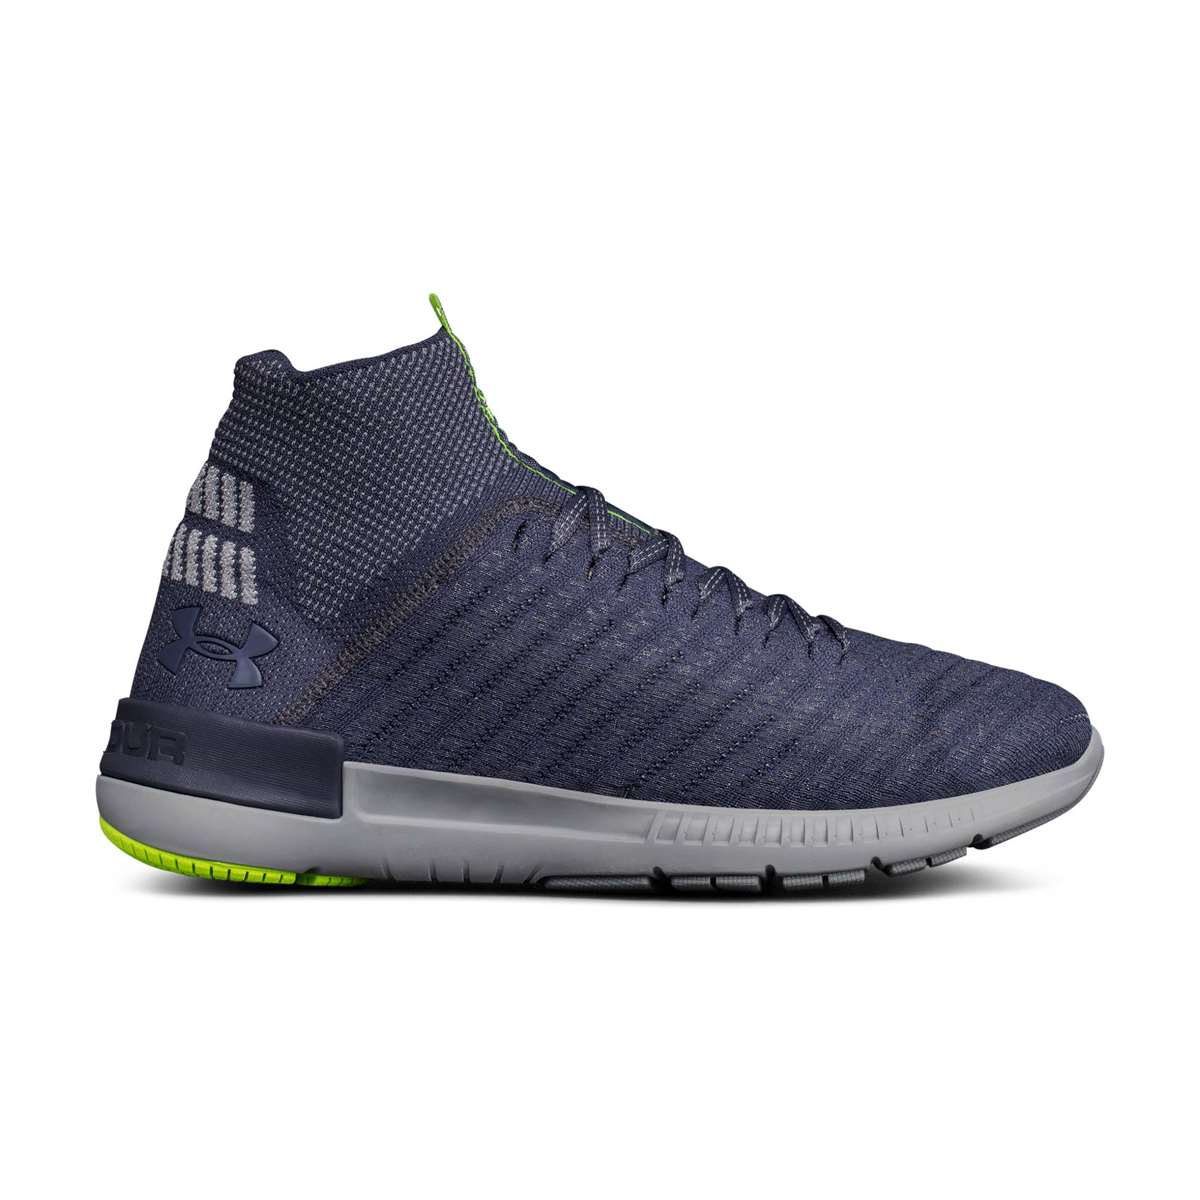 Under Armour M Ua Highlight Delta 2 Shoes